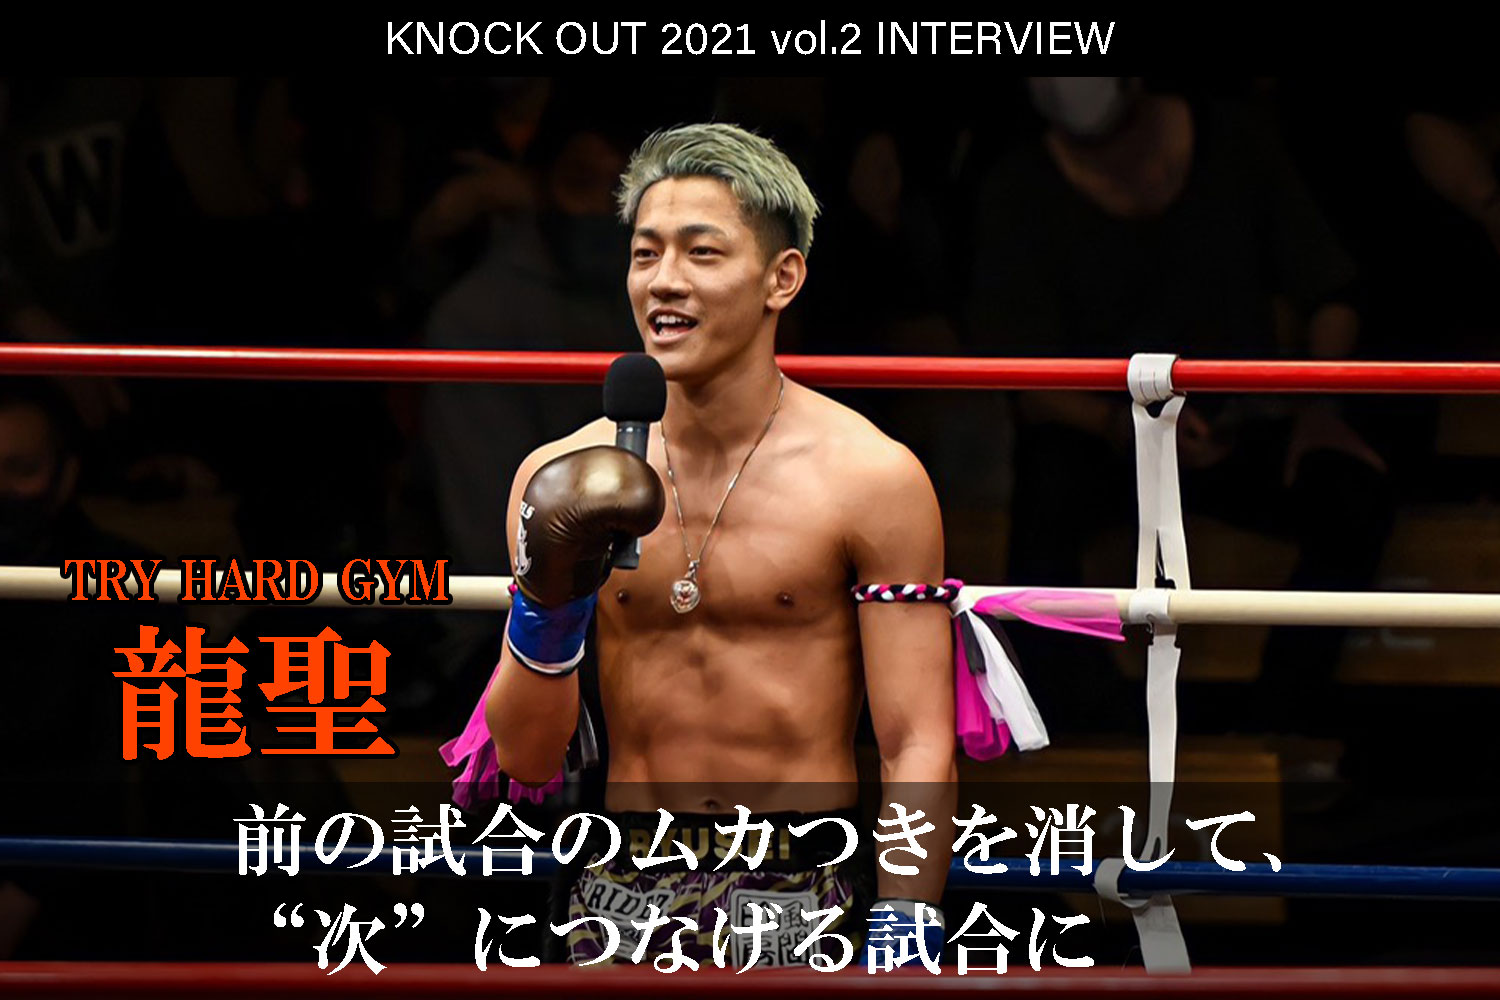 4.25 KNOCK OUT 2021 vol.2 龍聖インタビュー公開!